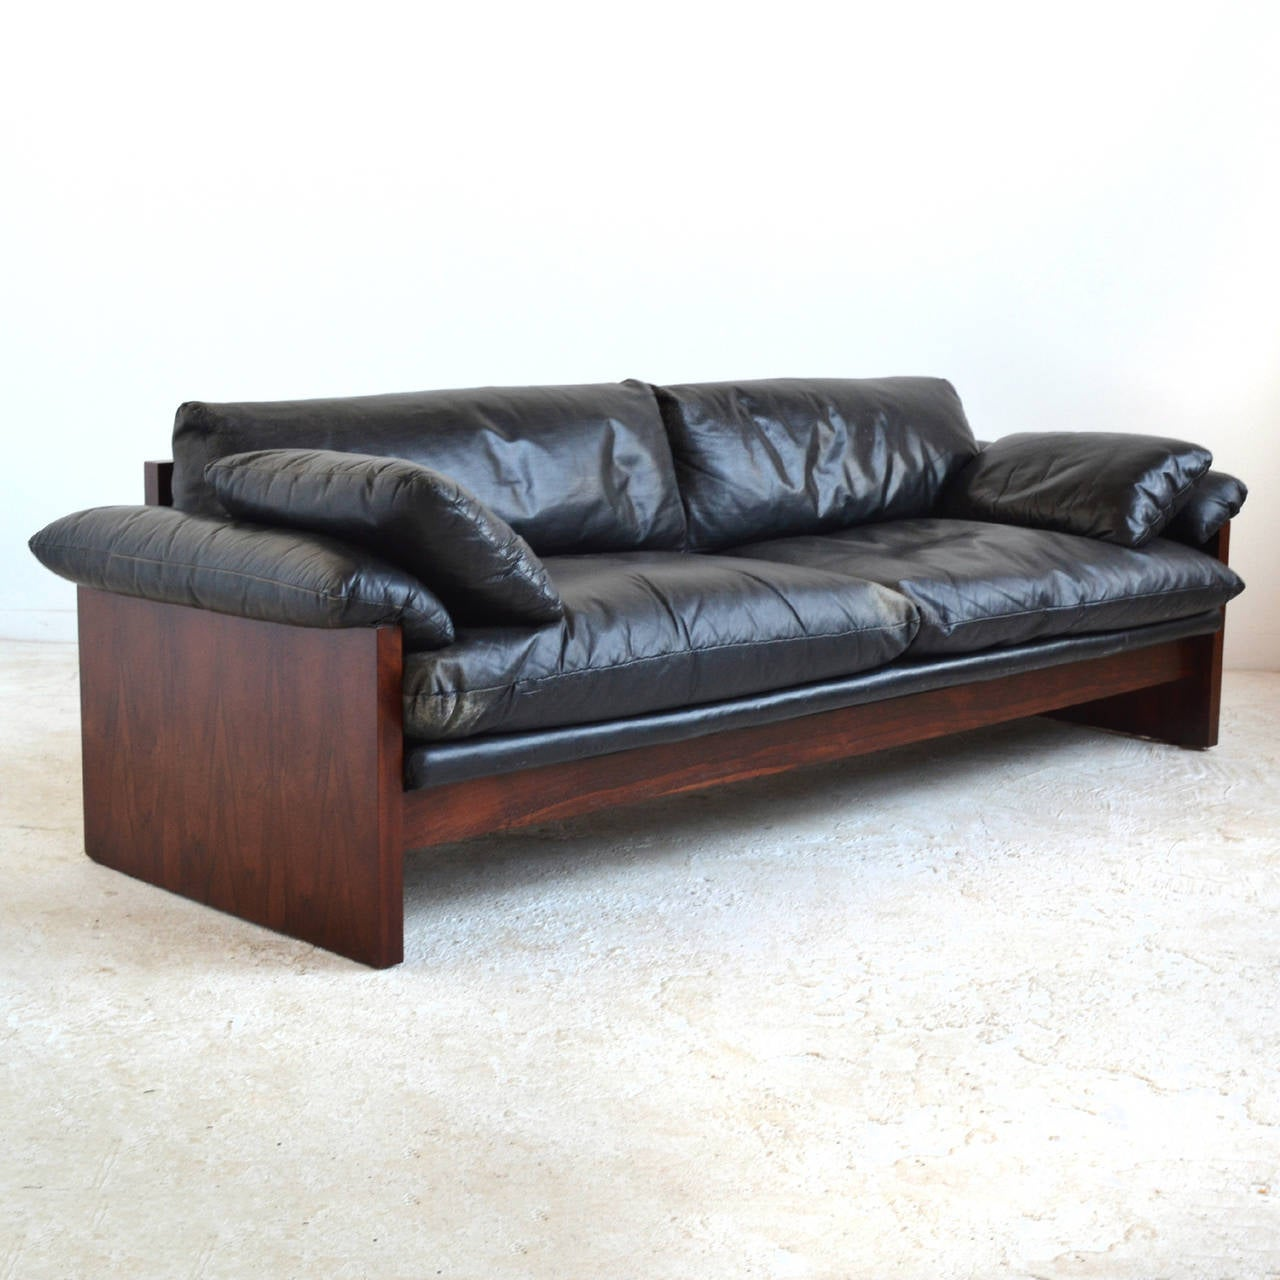 We Acquired This Fantastic Sofa From The Original Owneru0027s Collection Which  Included A Remarkable Assortment Of